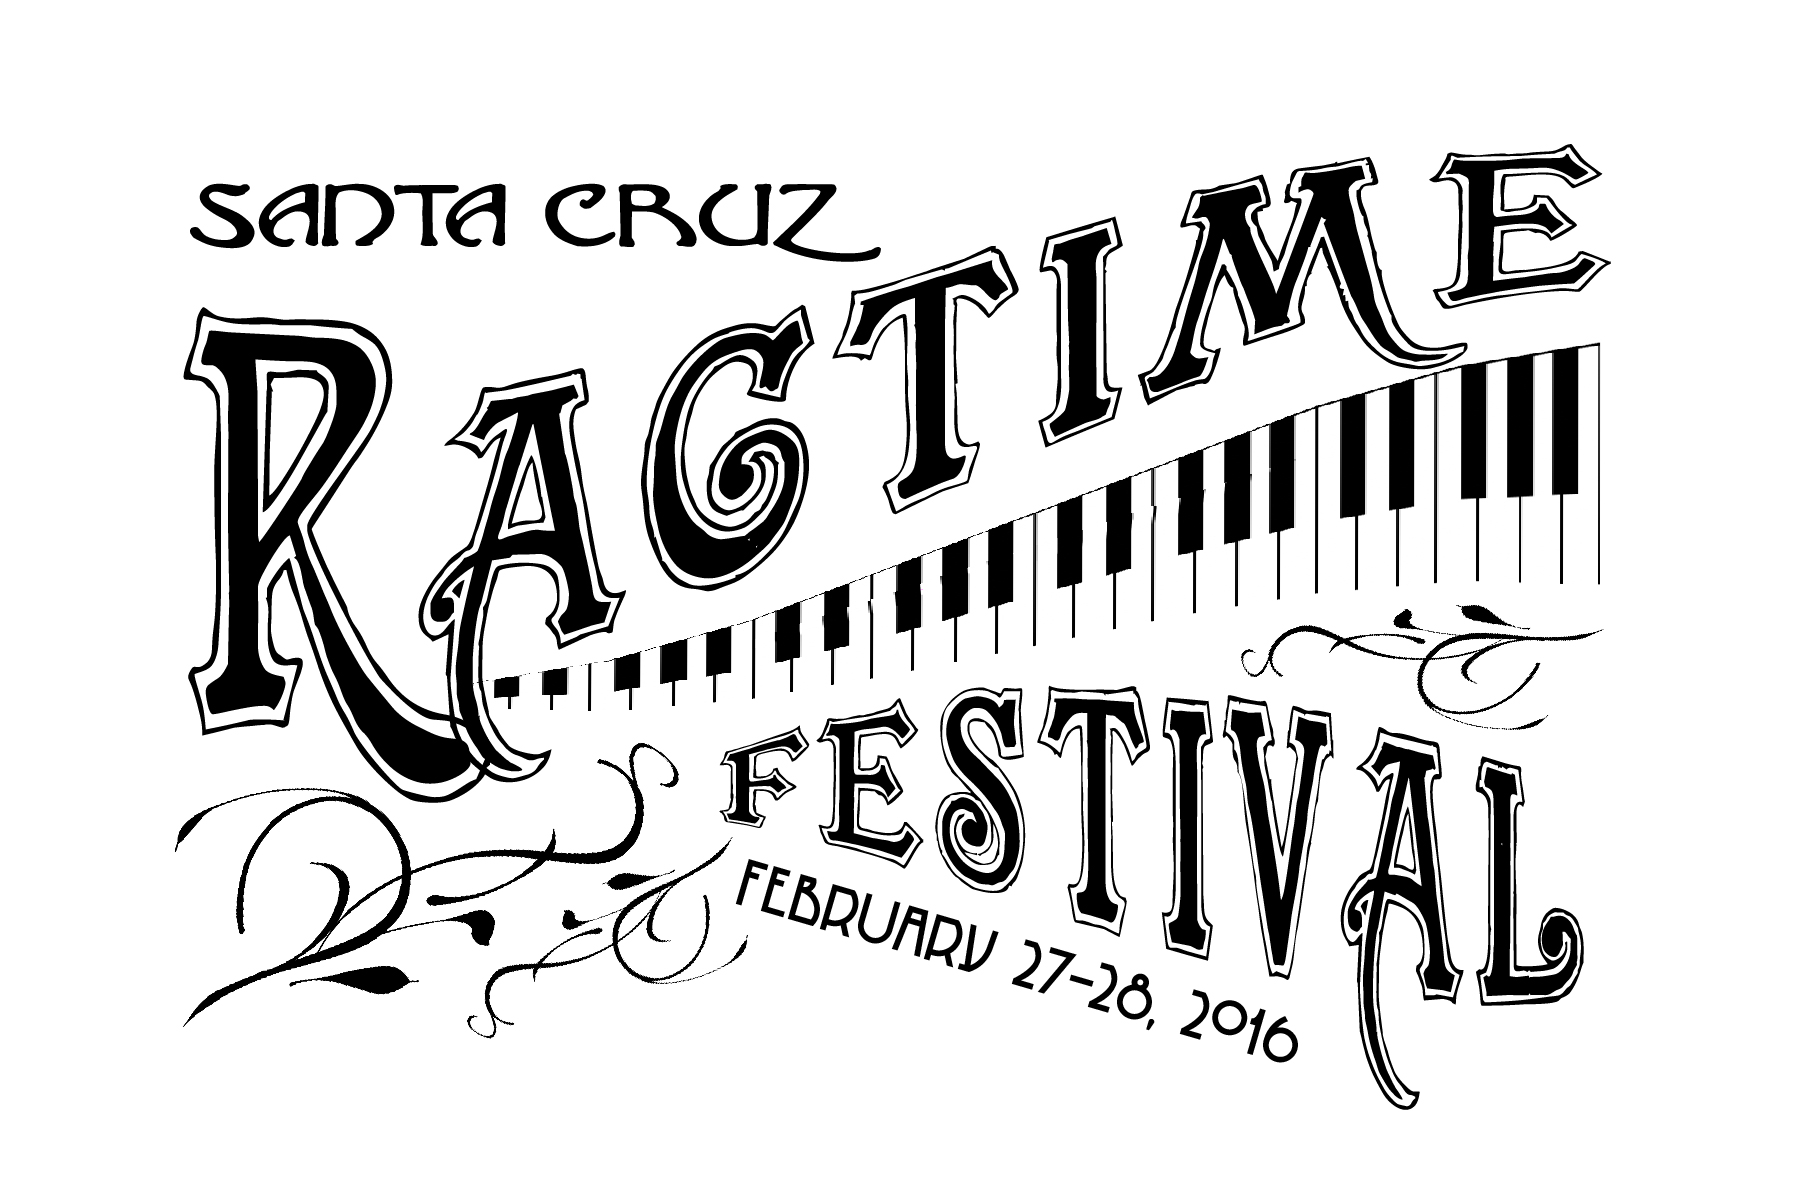 ragtime fest logo simple-01.jpg